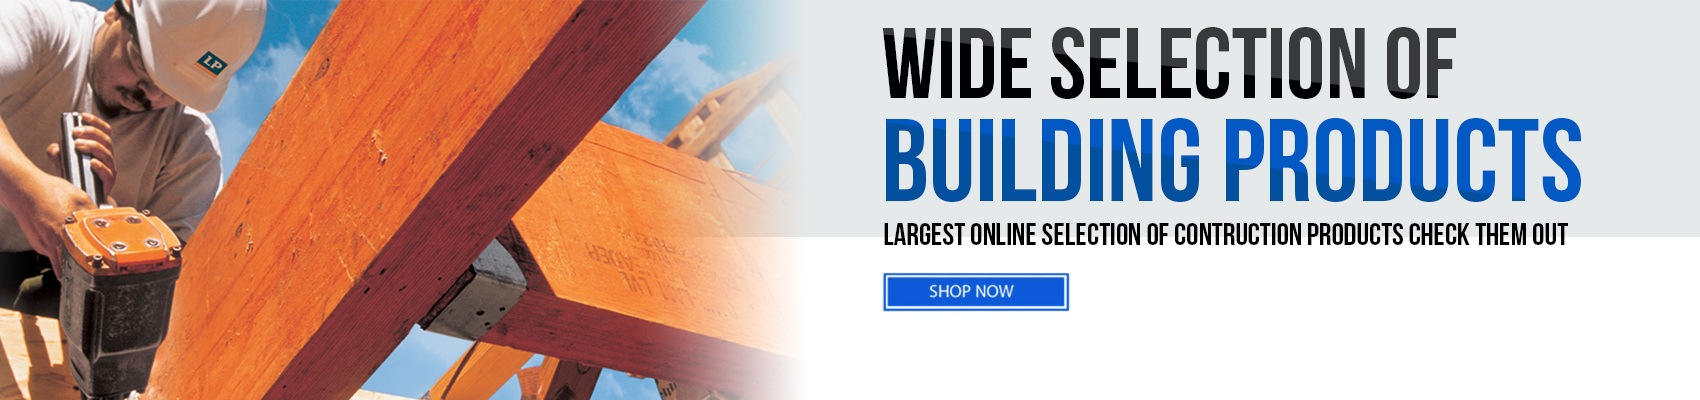 Building Materials National Supply Network Shop Discounted Prices